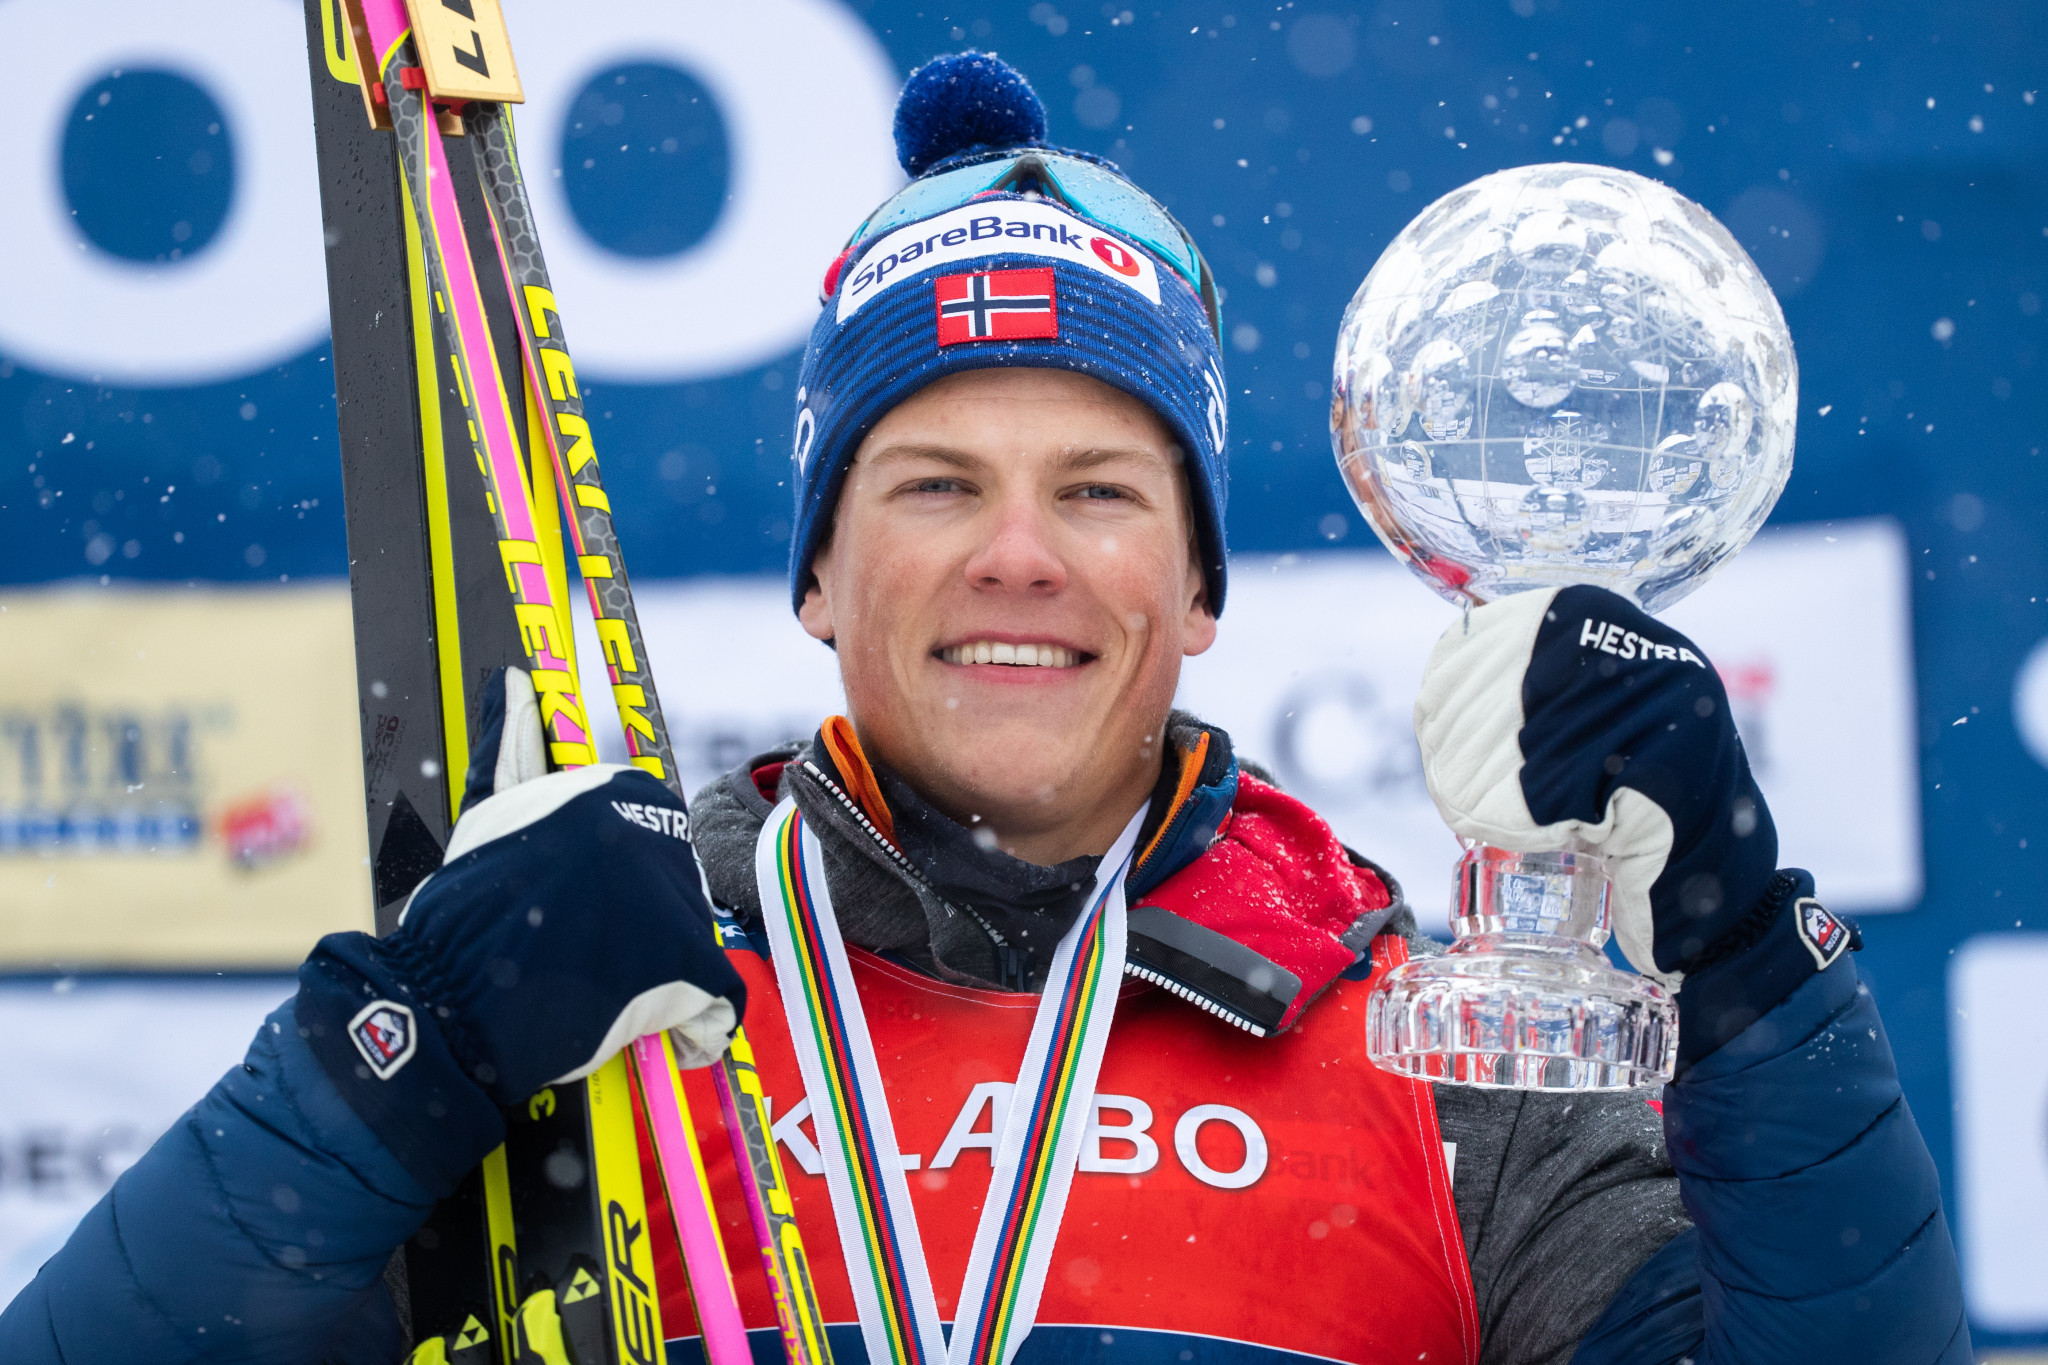 FIS Cross-Country World Cup set for season opener in Ruka